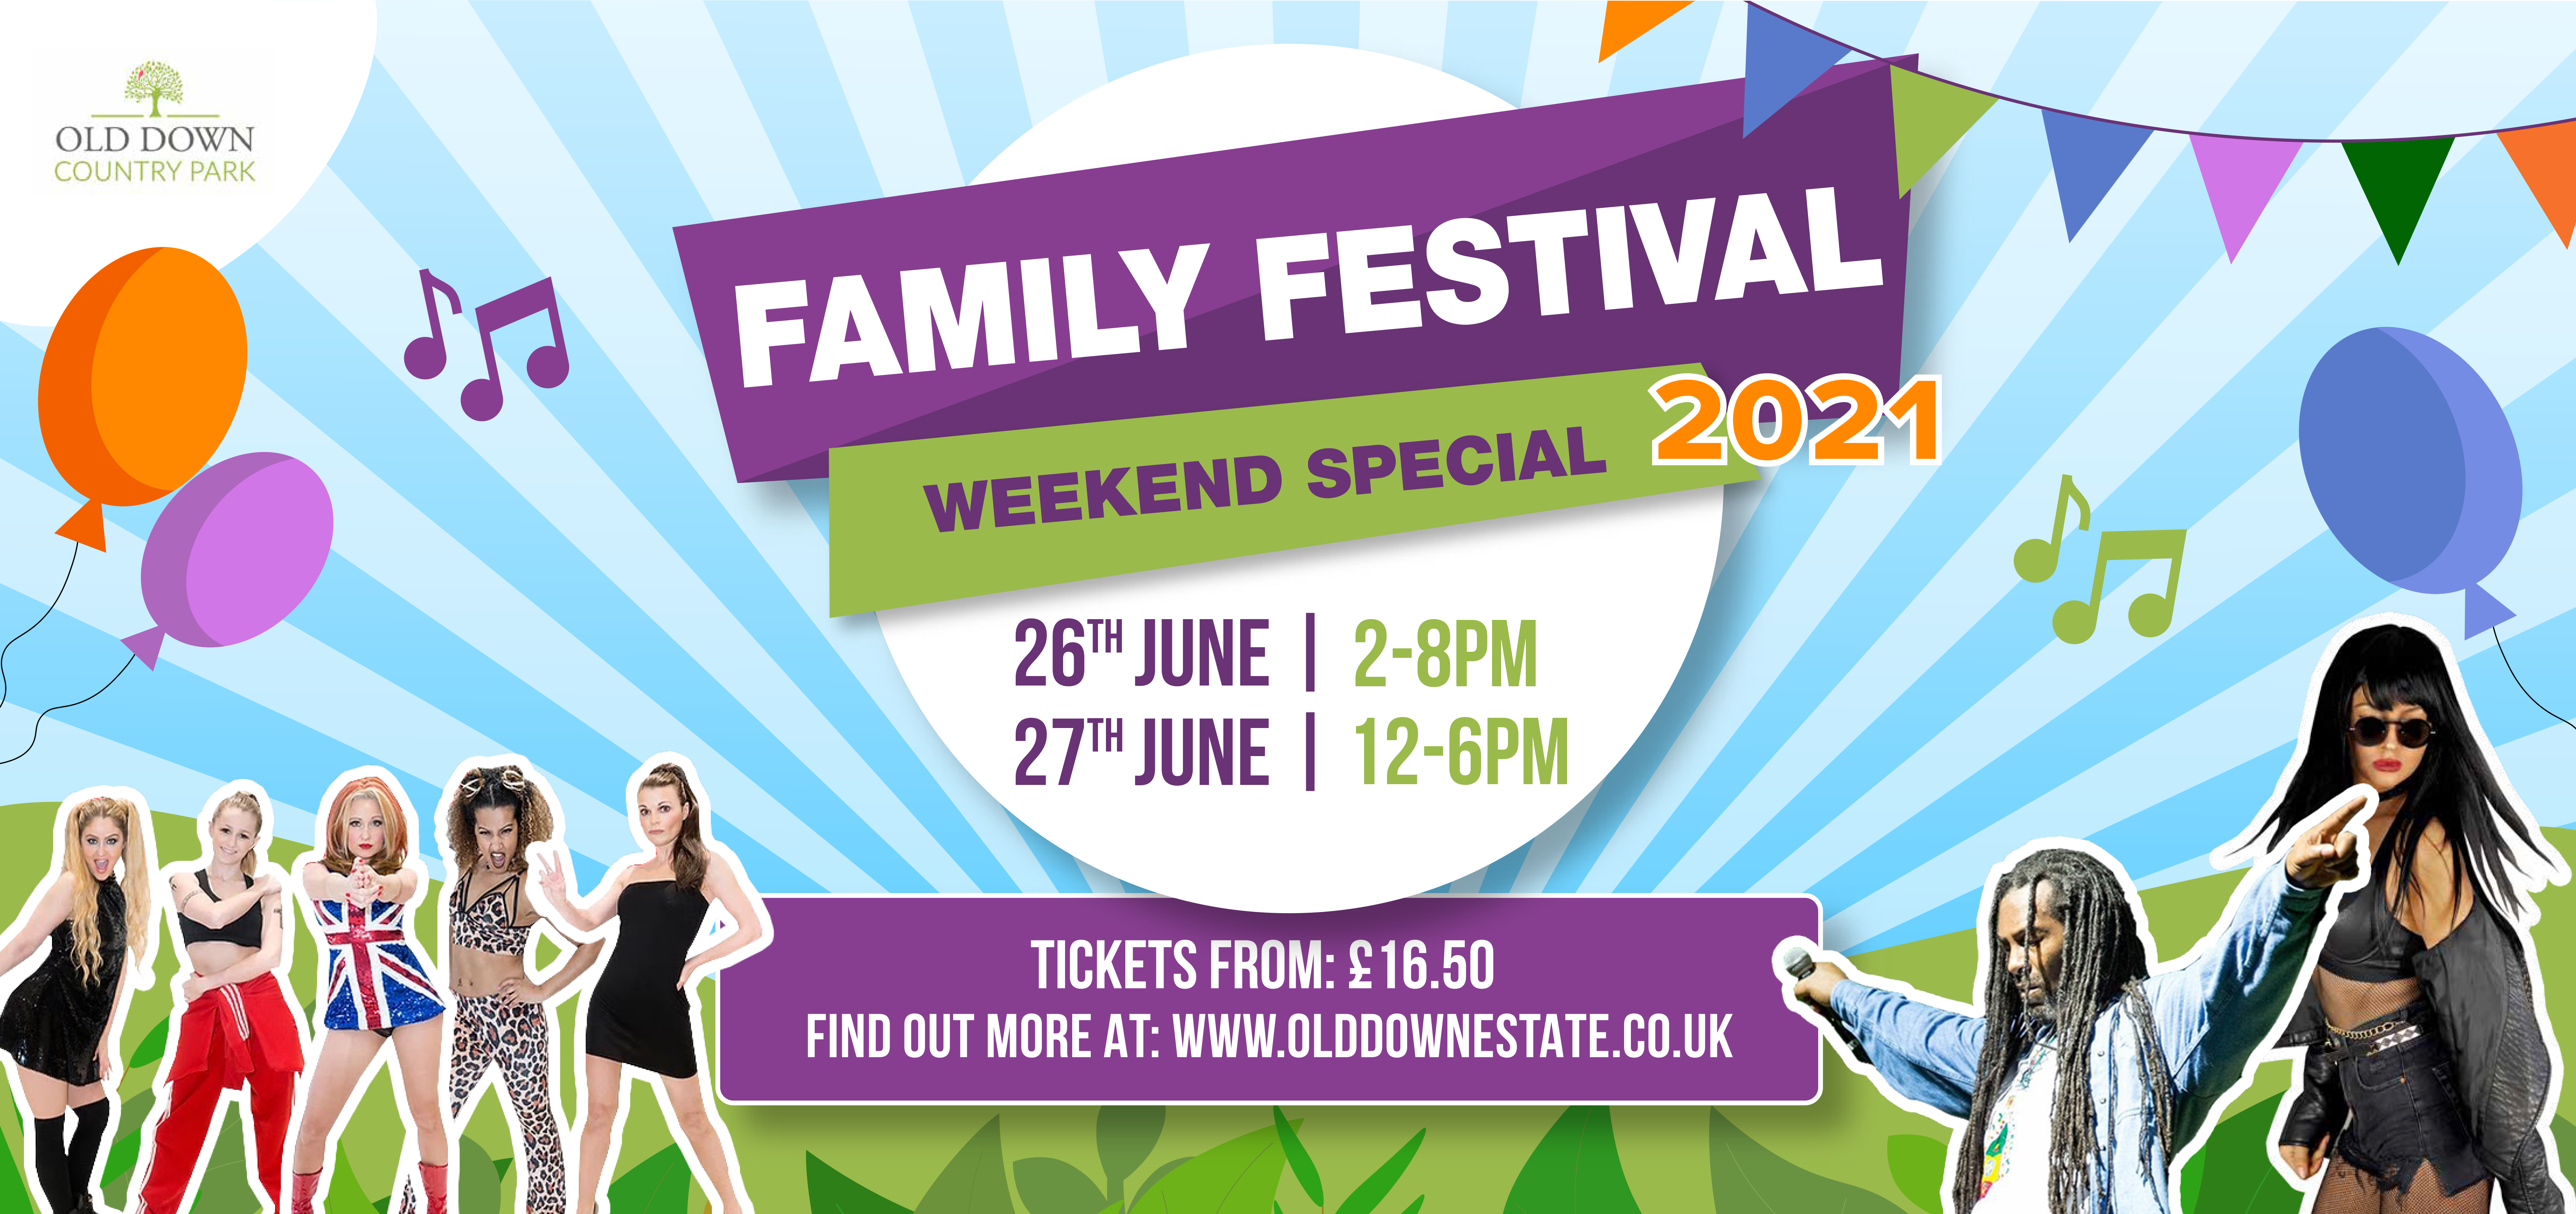 Family Festival Weekend Special 26th 27th June